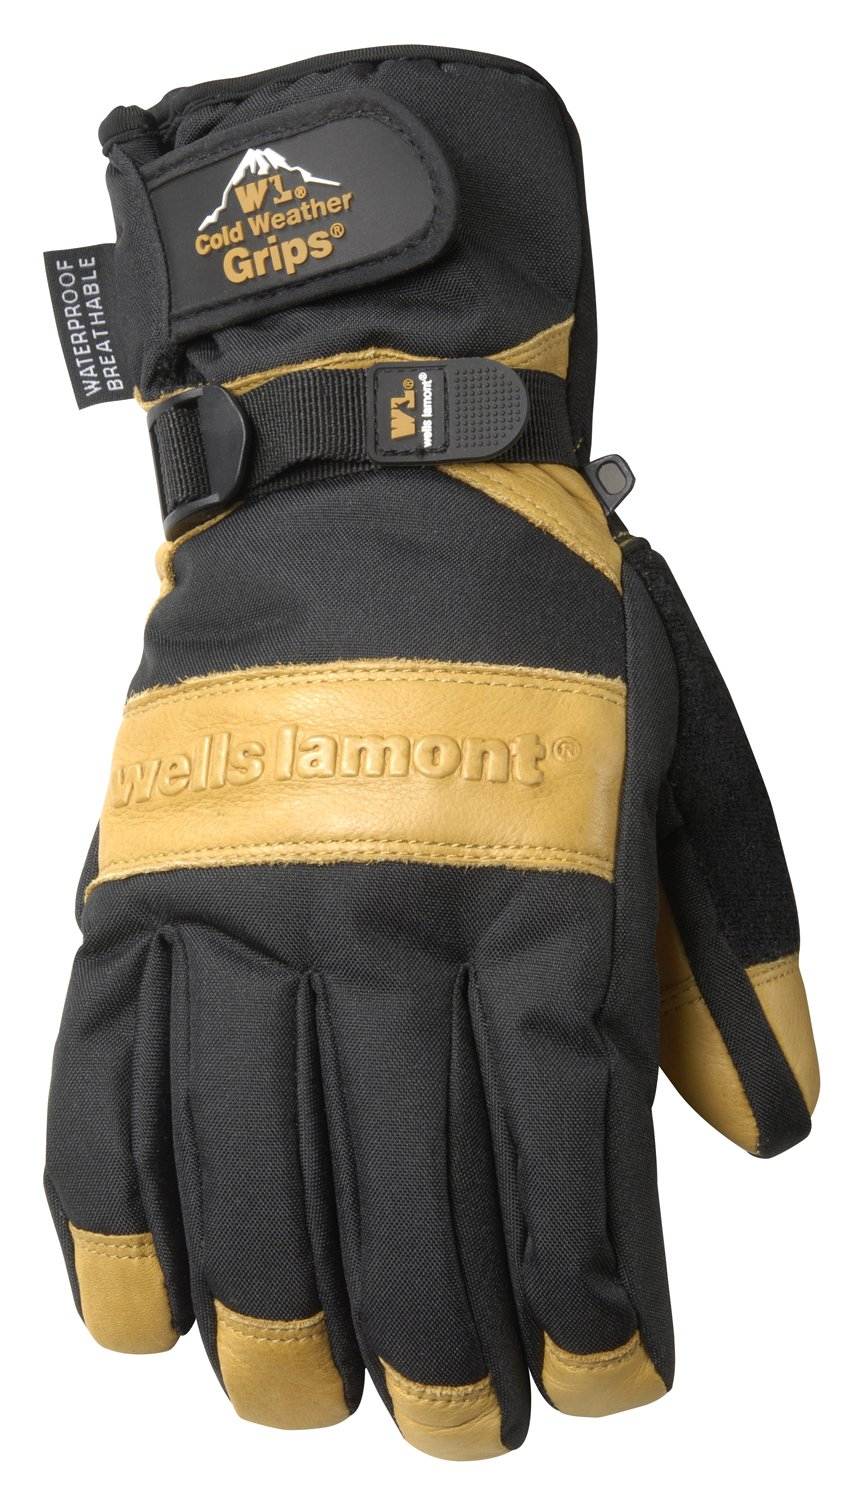 Insulated leather work gloves amazon - Wells Lamont Winter Gloves With Cowhide Leather Palm Insulated Ultimate Water Resistant Large 7660l Fleece Lined Leather Work Gloves Amazon Com